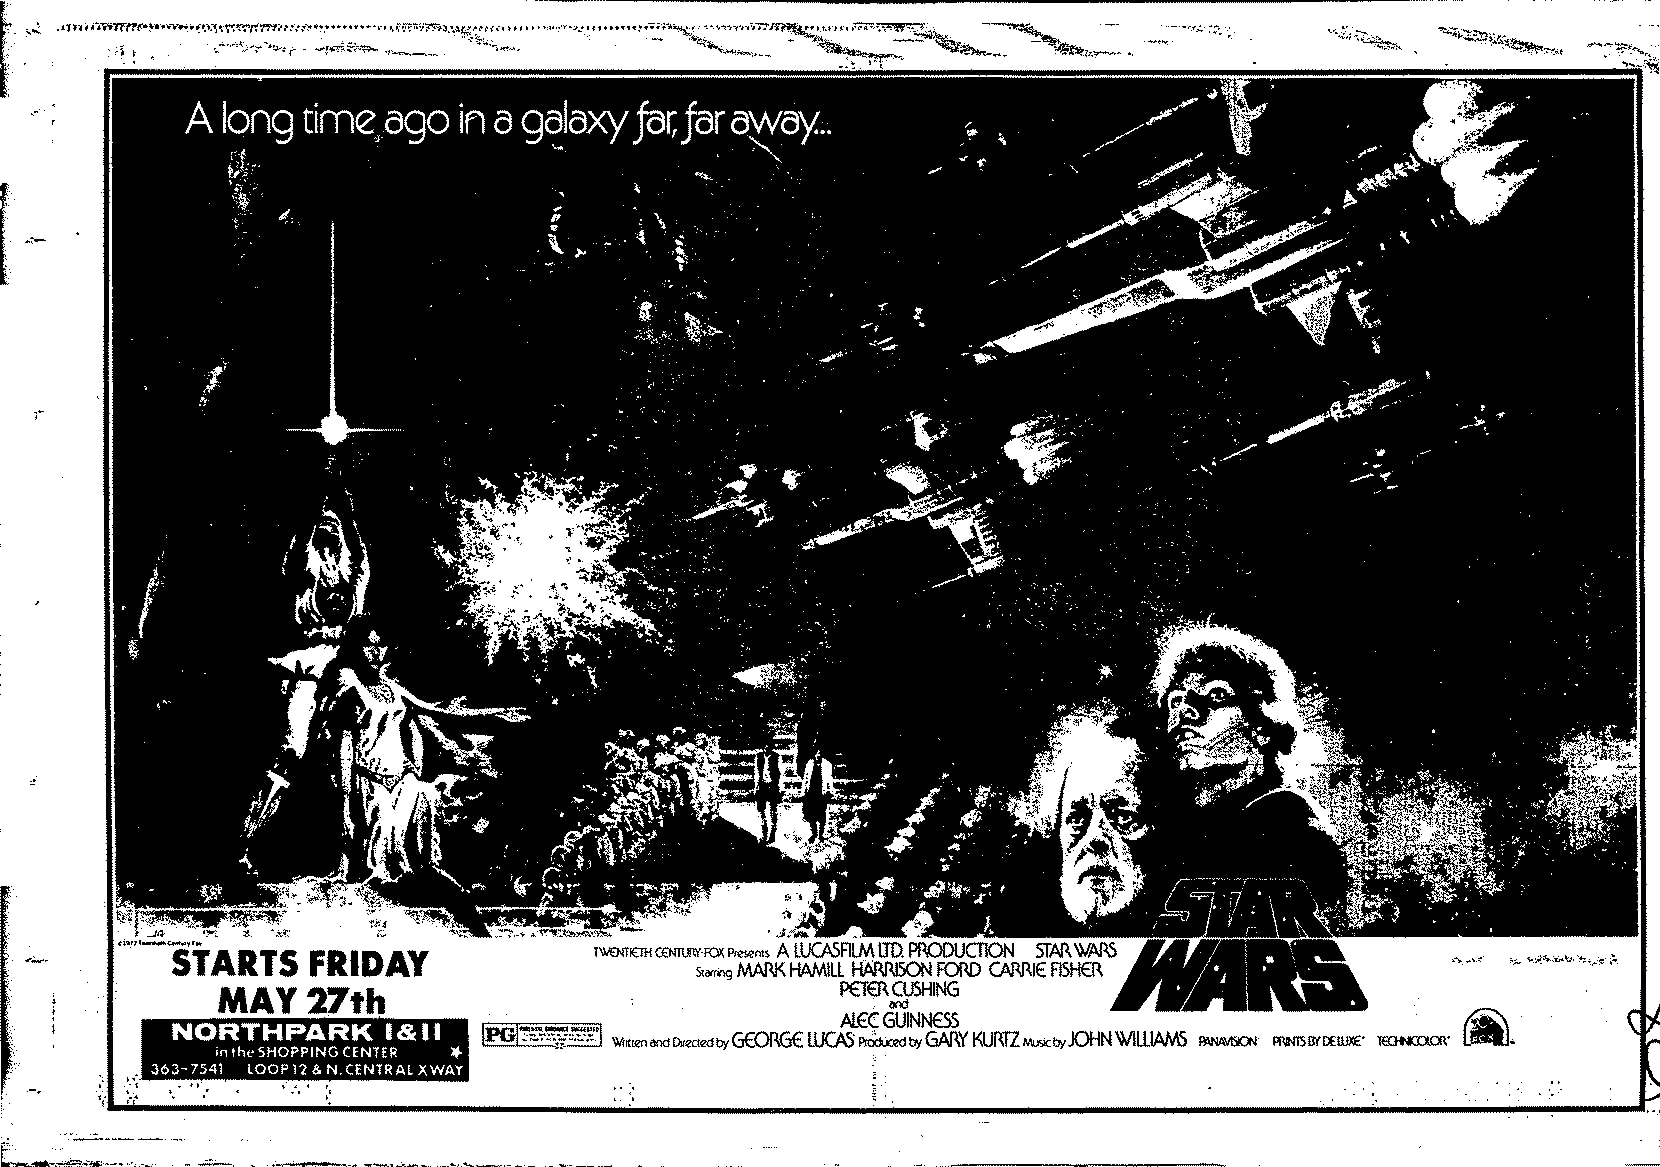 A full-page ad for Star Wars ran in The Dallas Morning News on May 22, 1977.